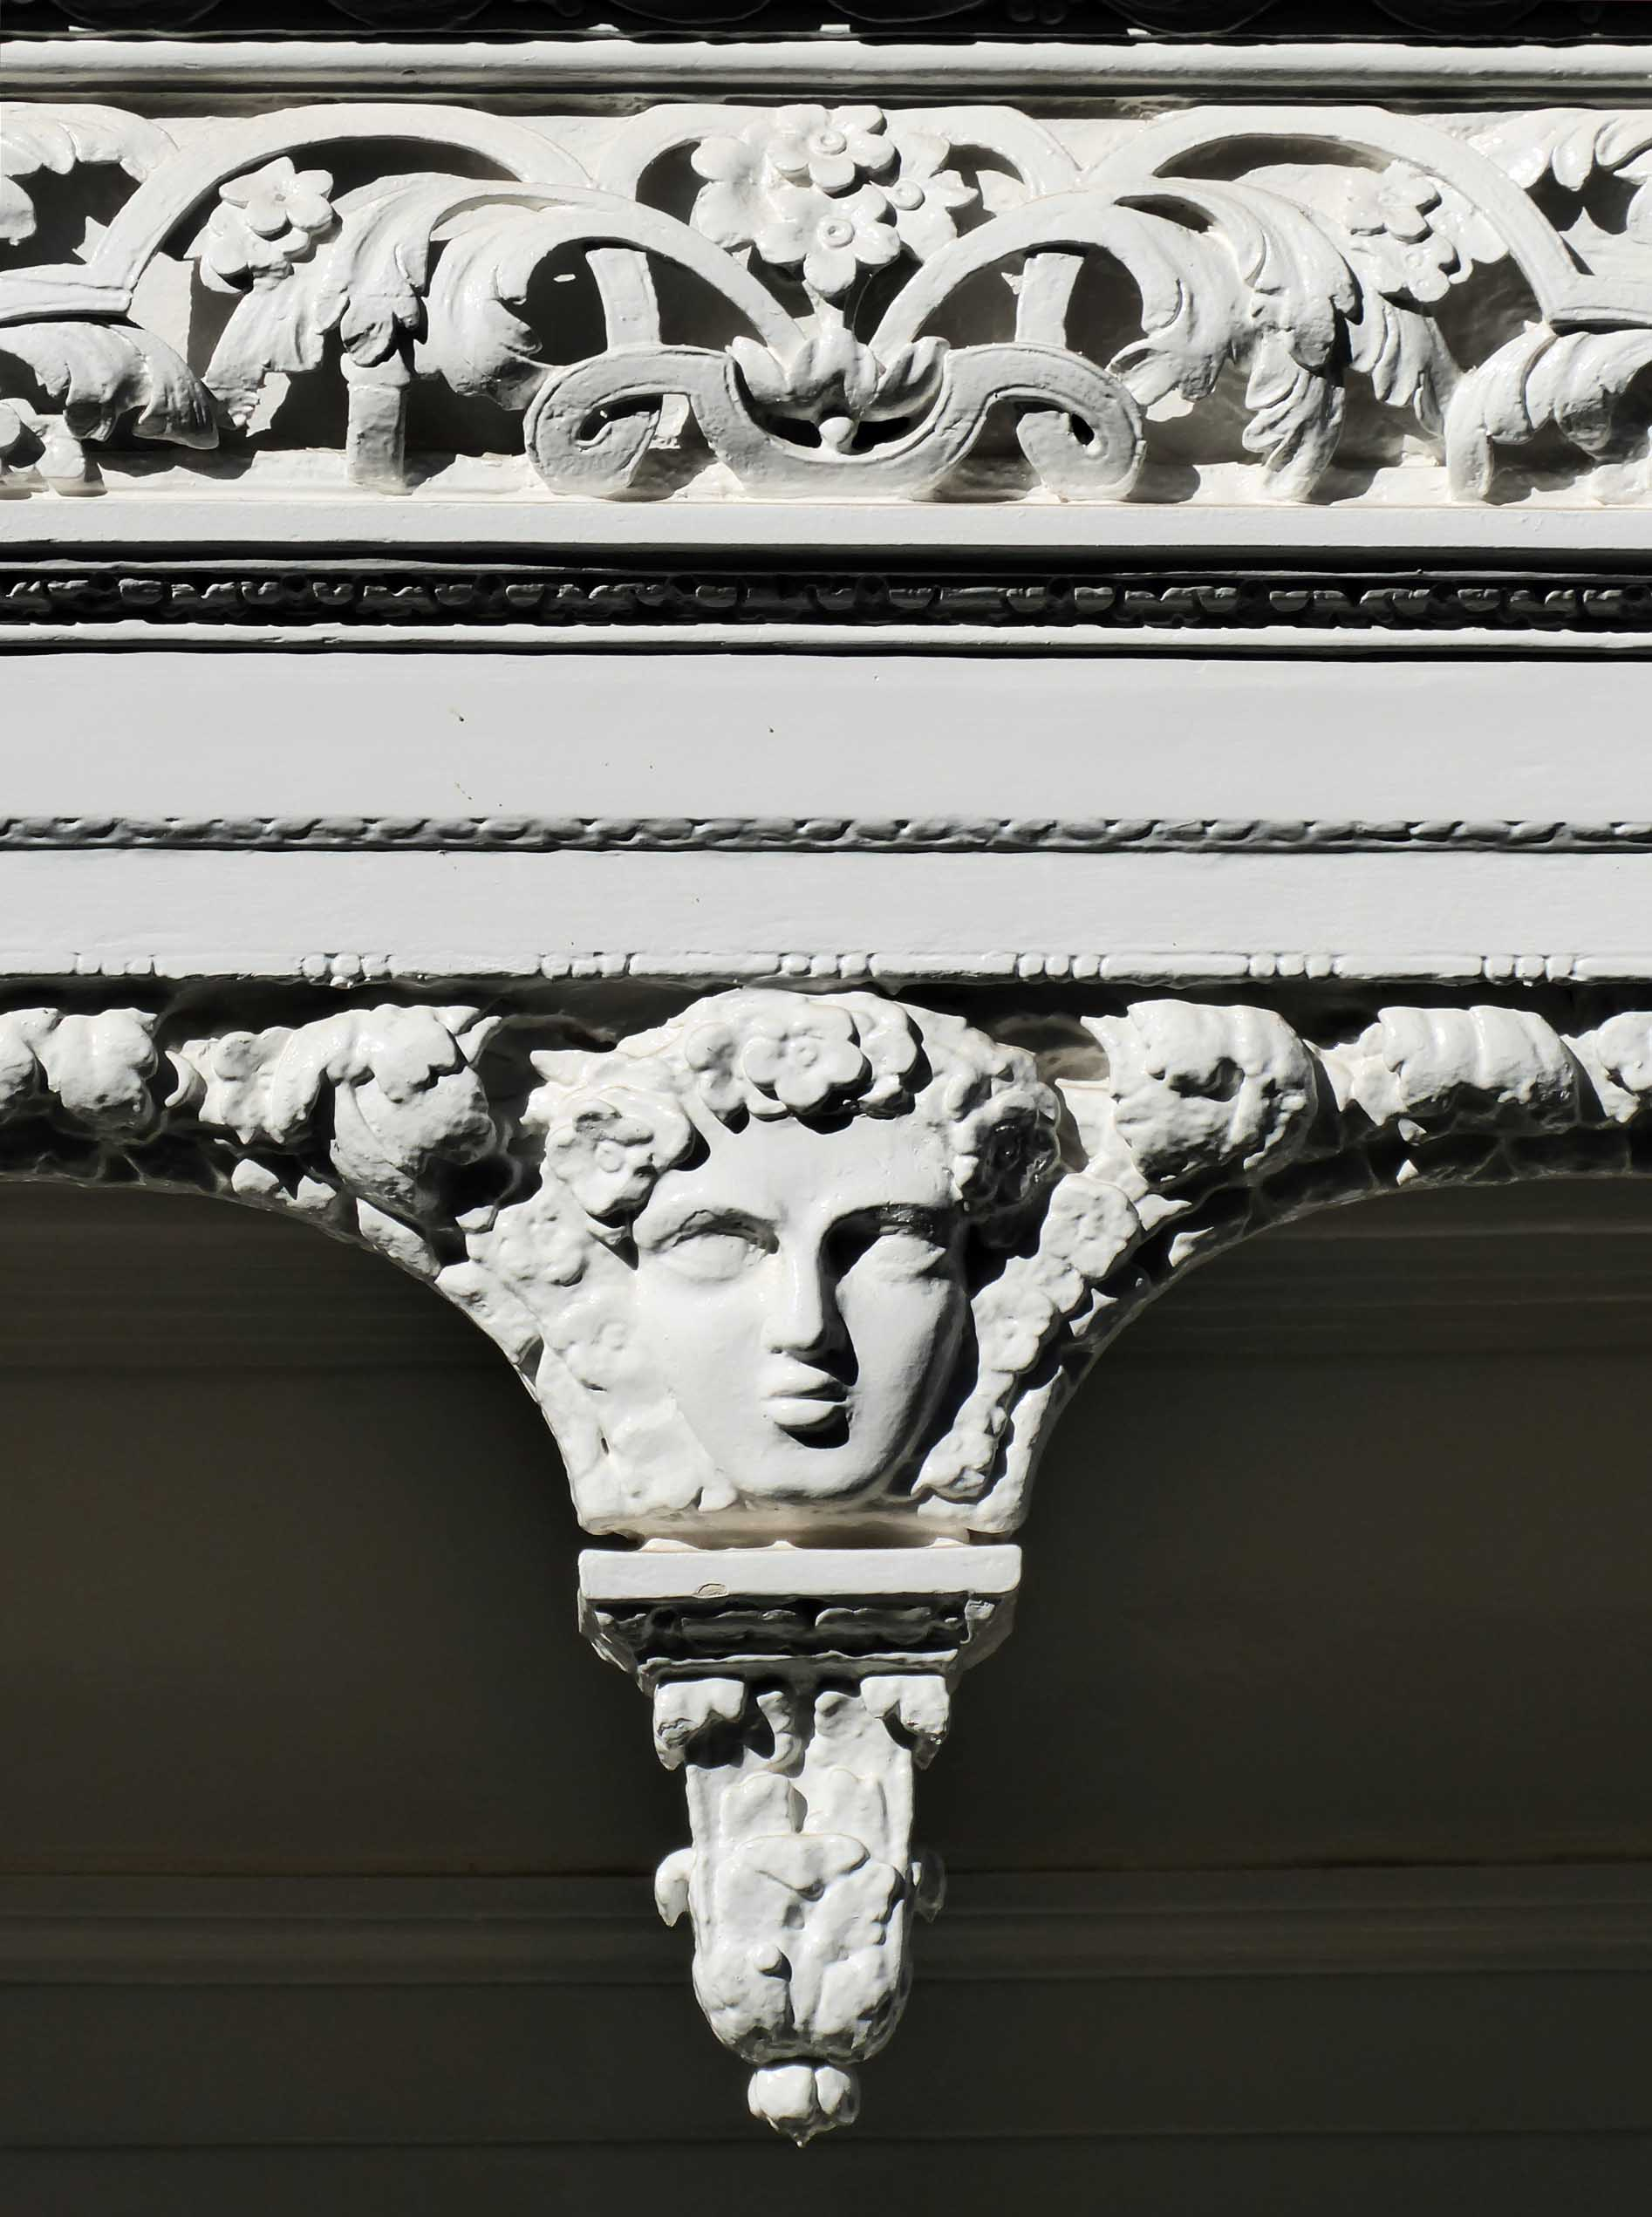 Ornate stone carving detail